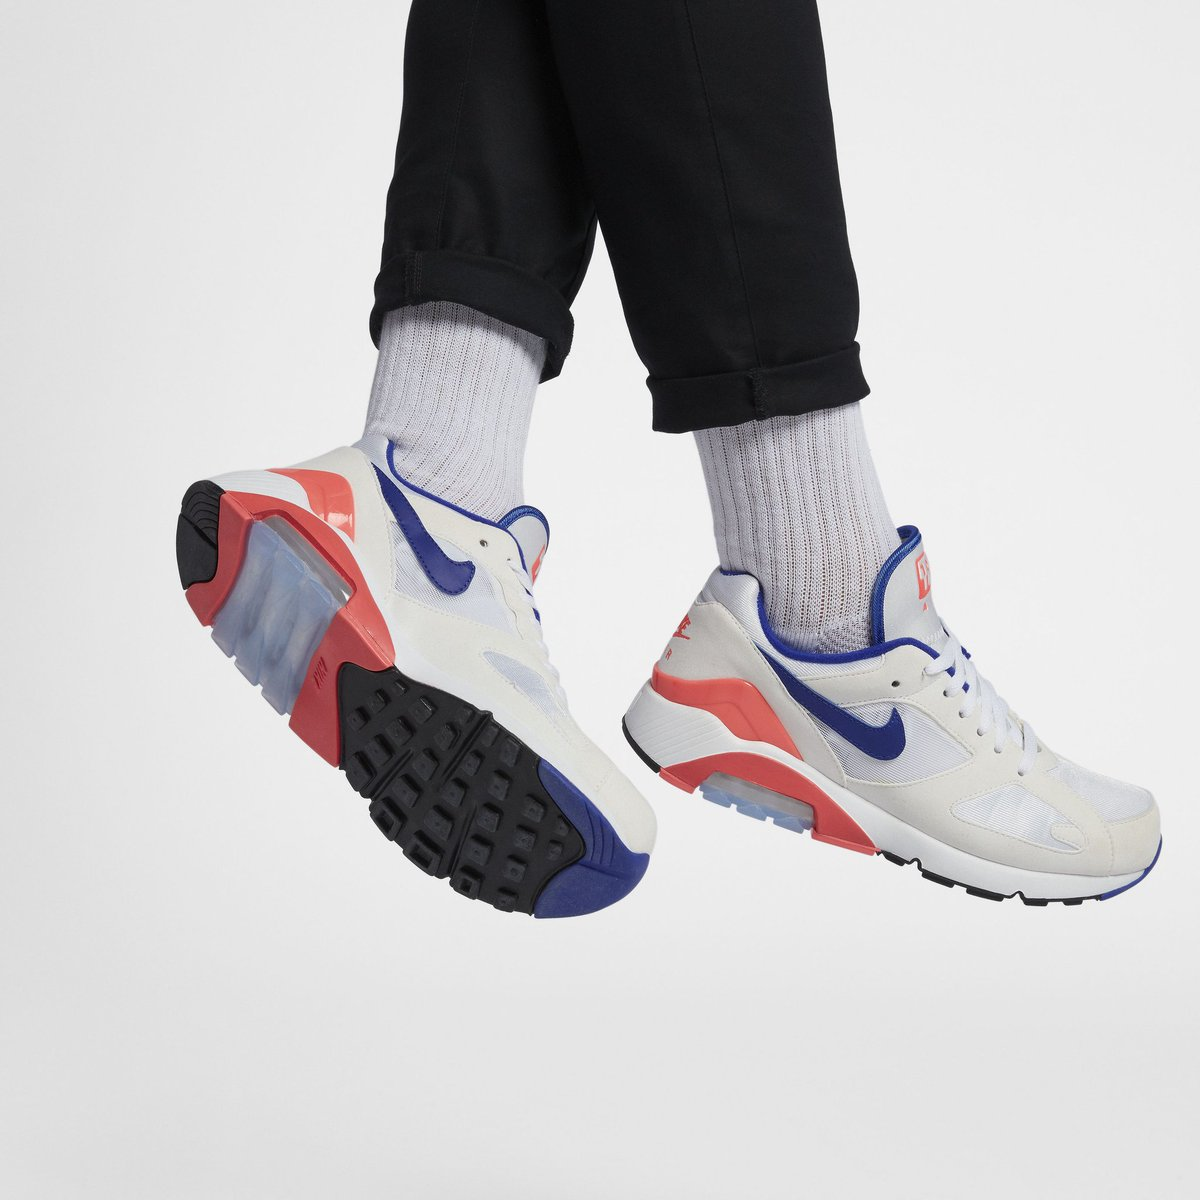 2018 Nike Air Max 180 OG White Ultramarine